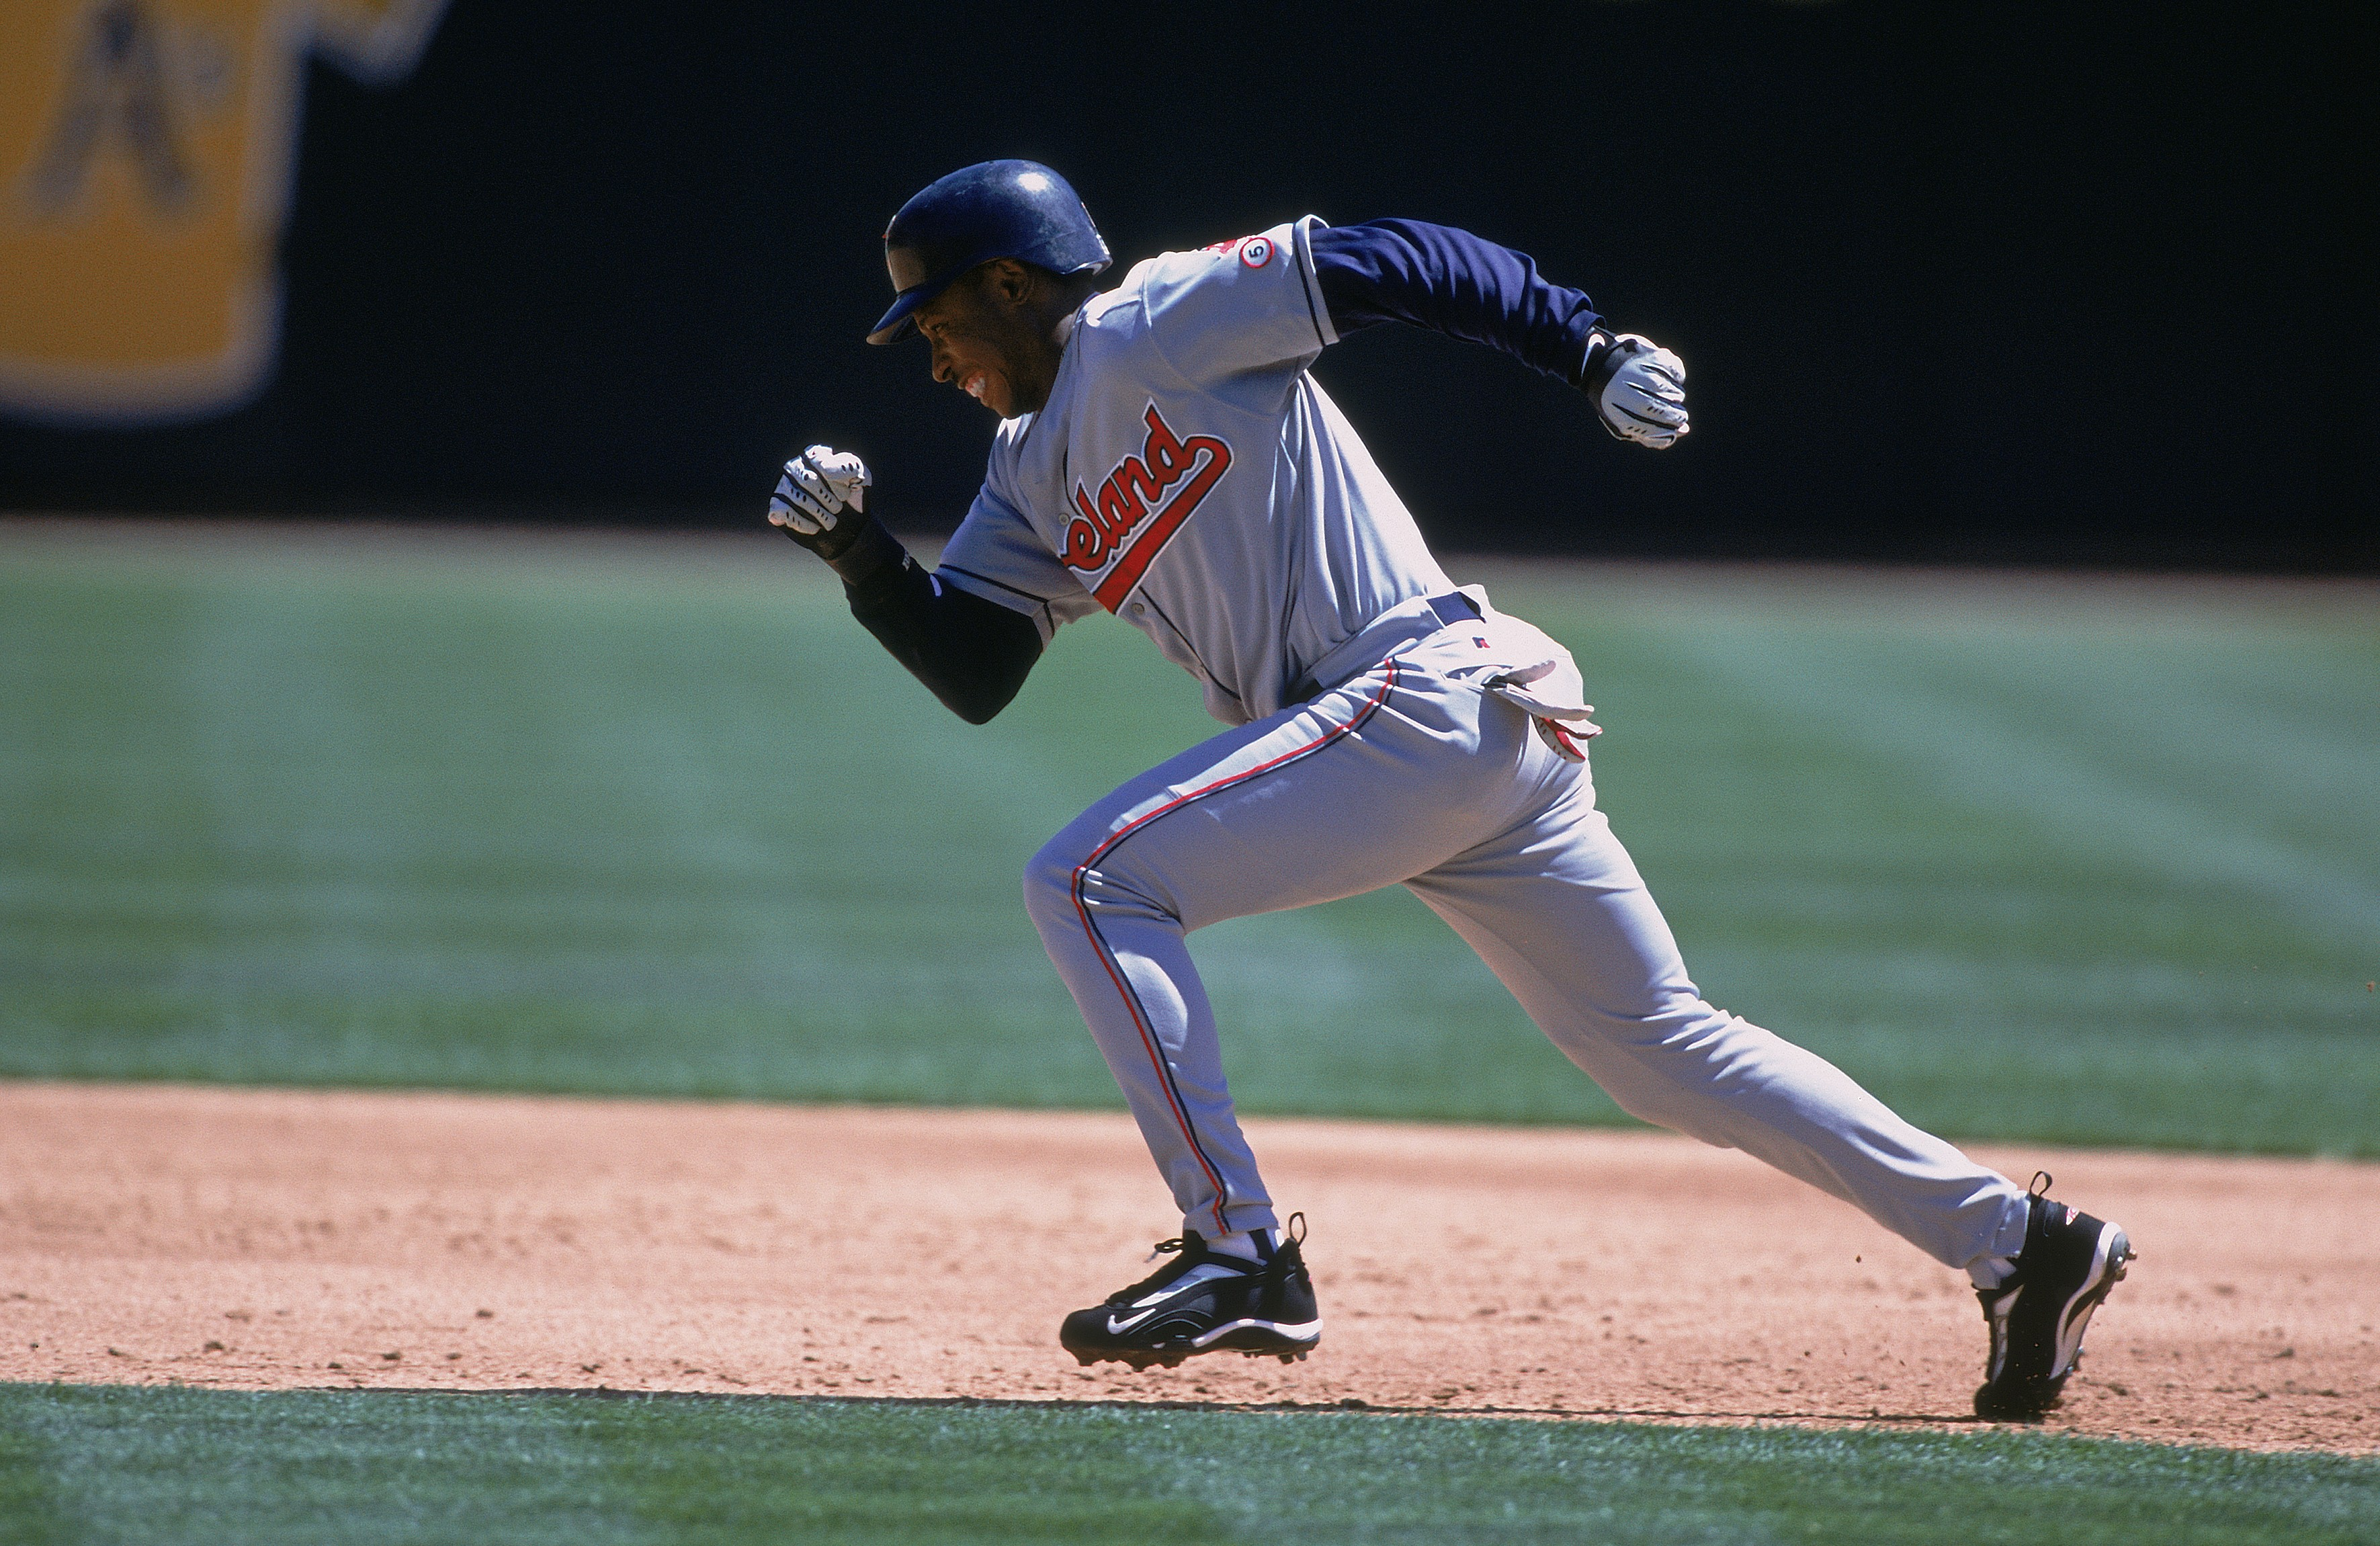 23 Aug 2001:  Kenny Lofton #7 of the Cleveland Indians stealing a base during the game against the Oakland Athletics at the Network Associates Coliseum in Oakland, California. The Indians defeated the Athletics 9-7.Mandatory Credit: Jed Jacobsohn  /Allspo